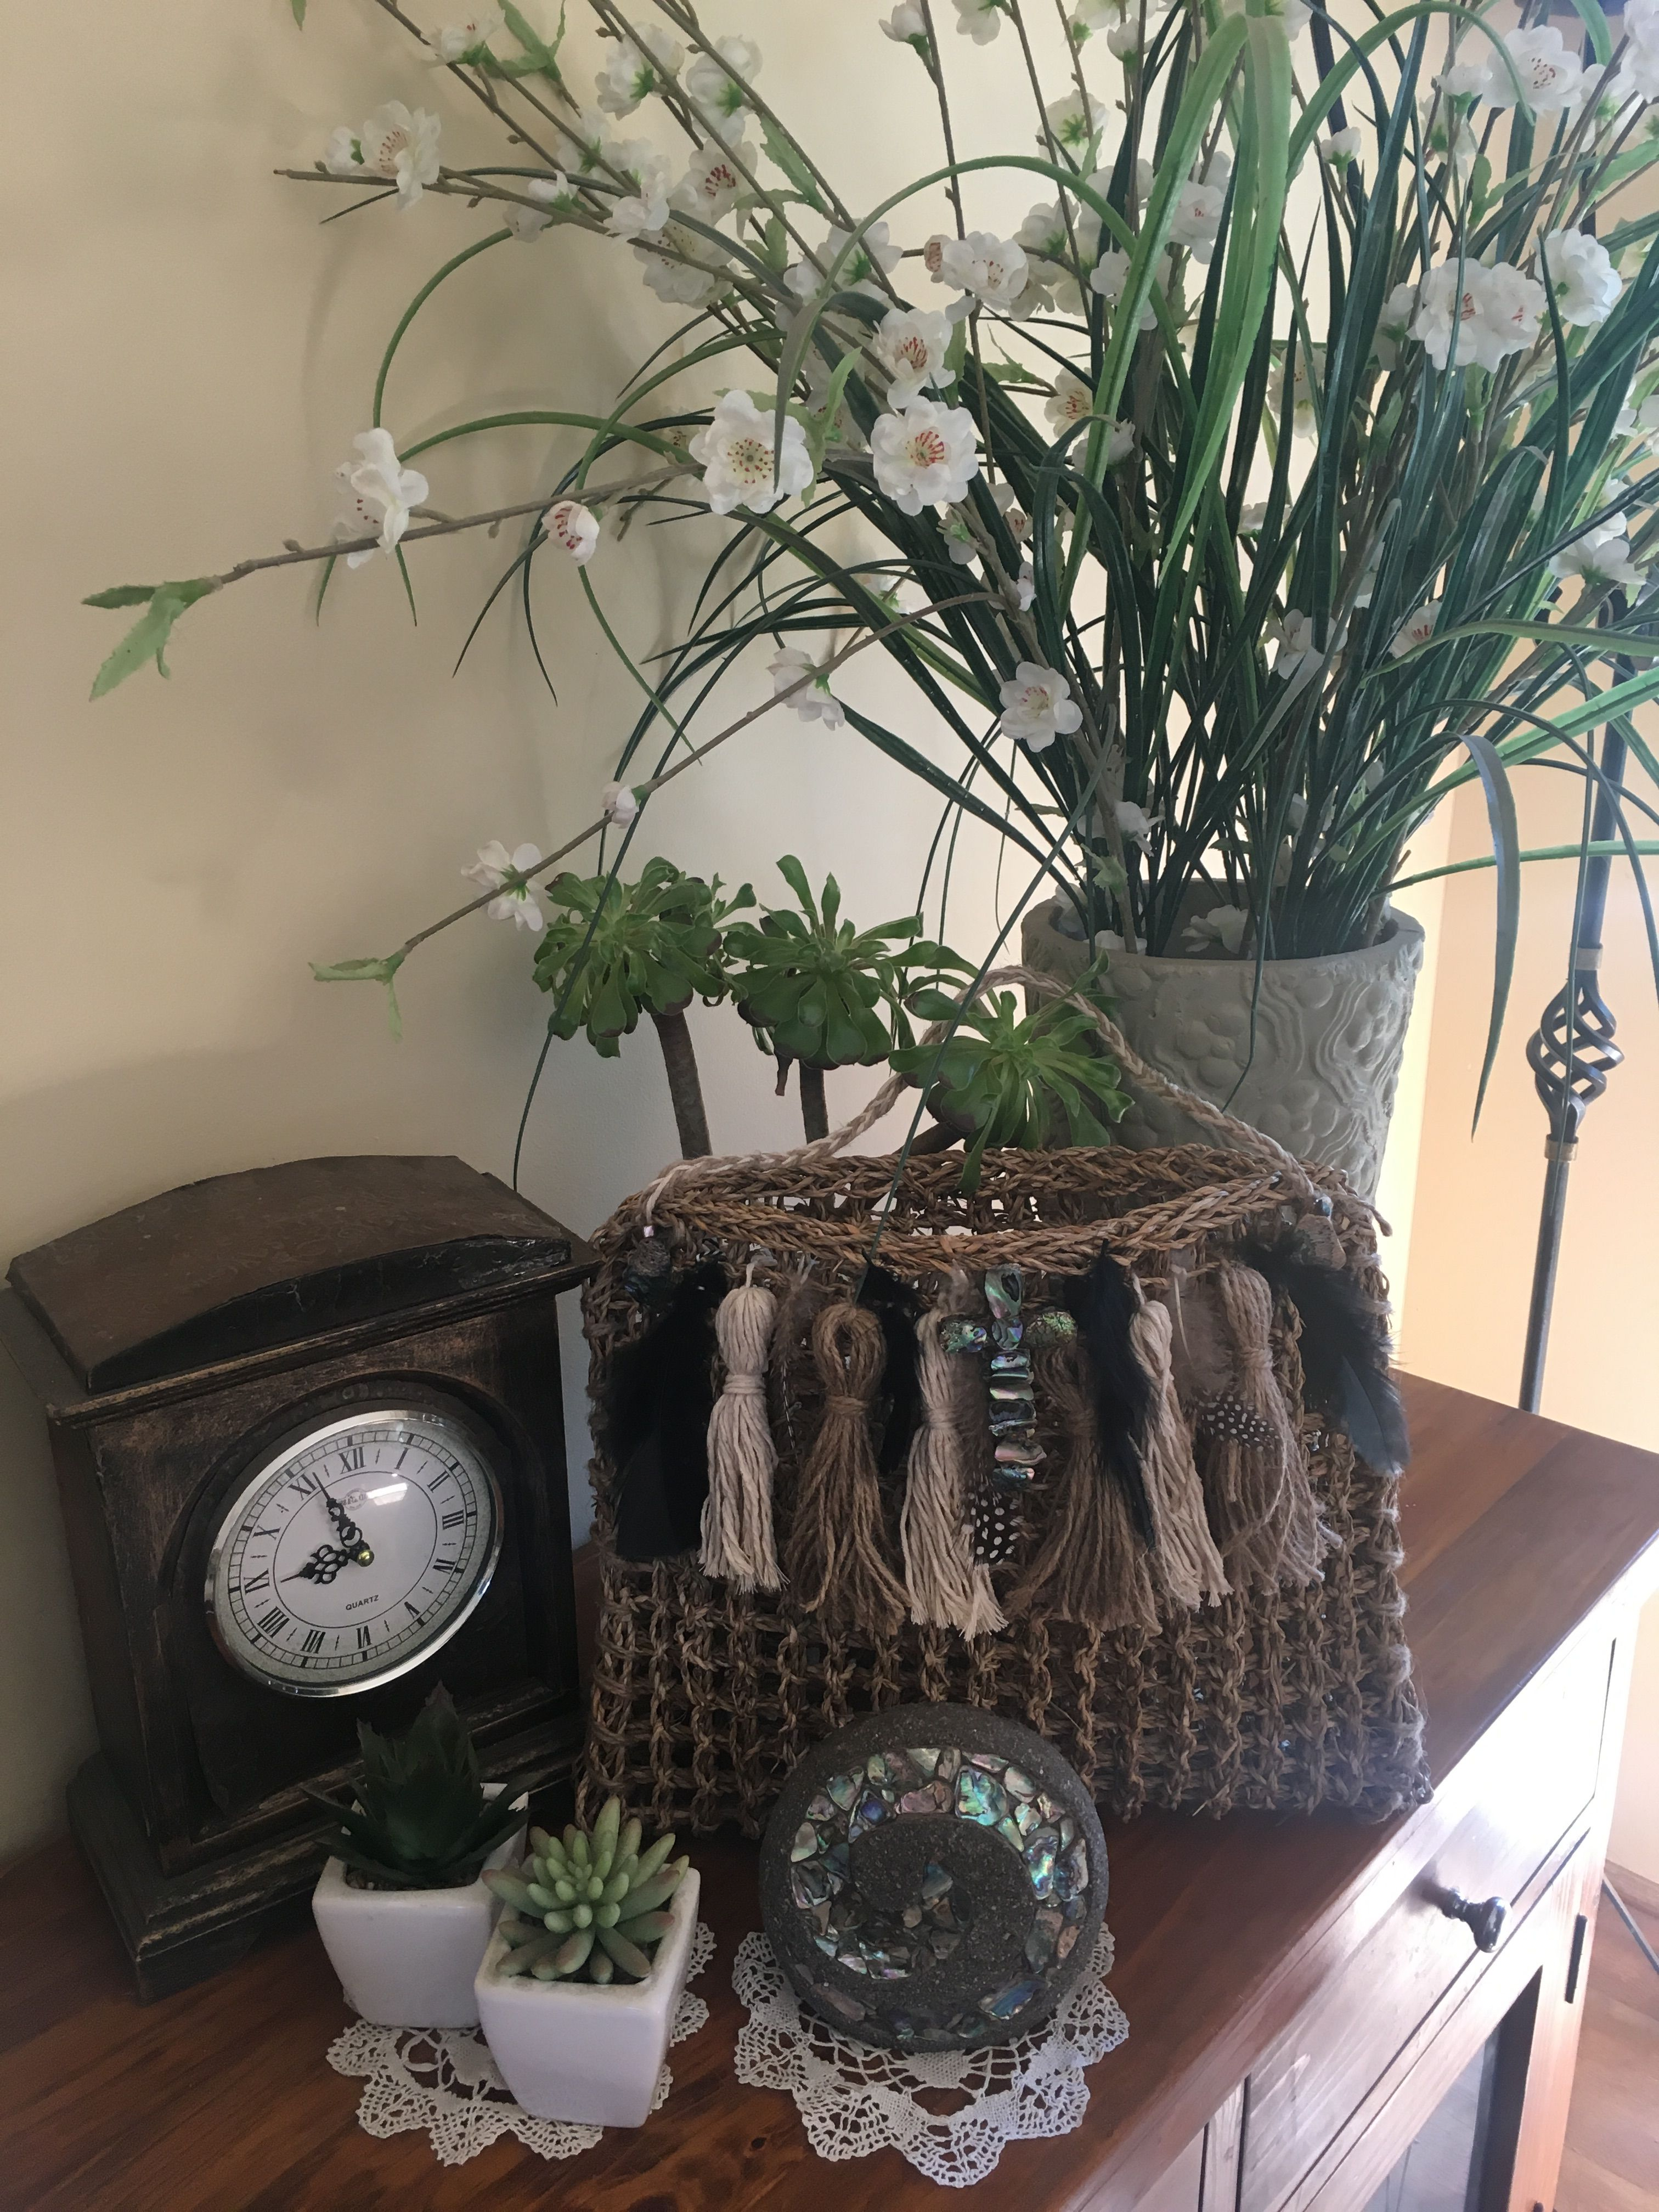 Diy bag/pot plant holder made from a mat. Plant holders